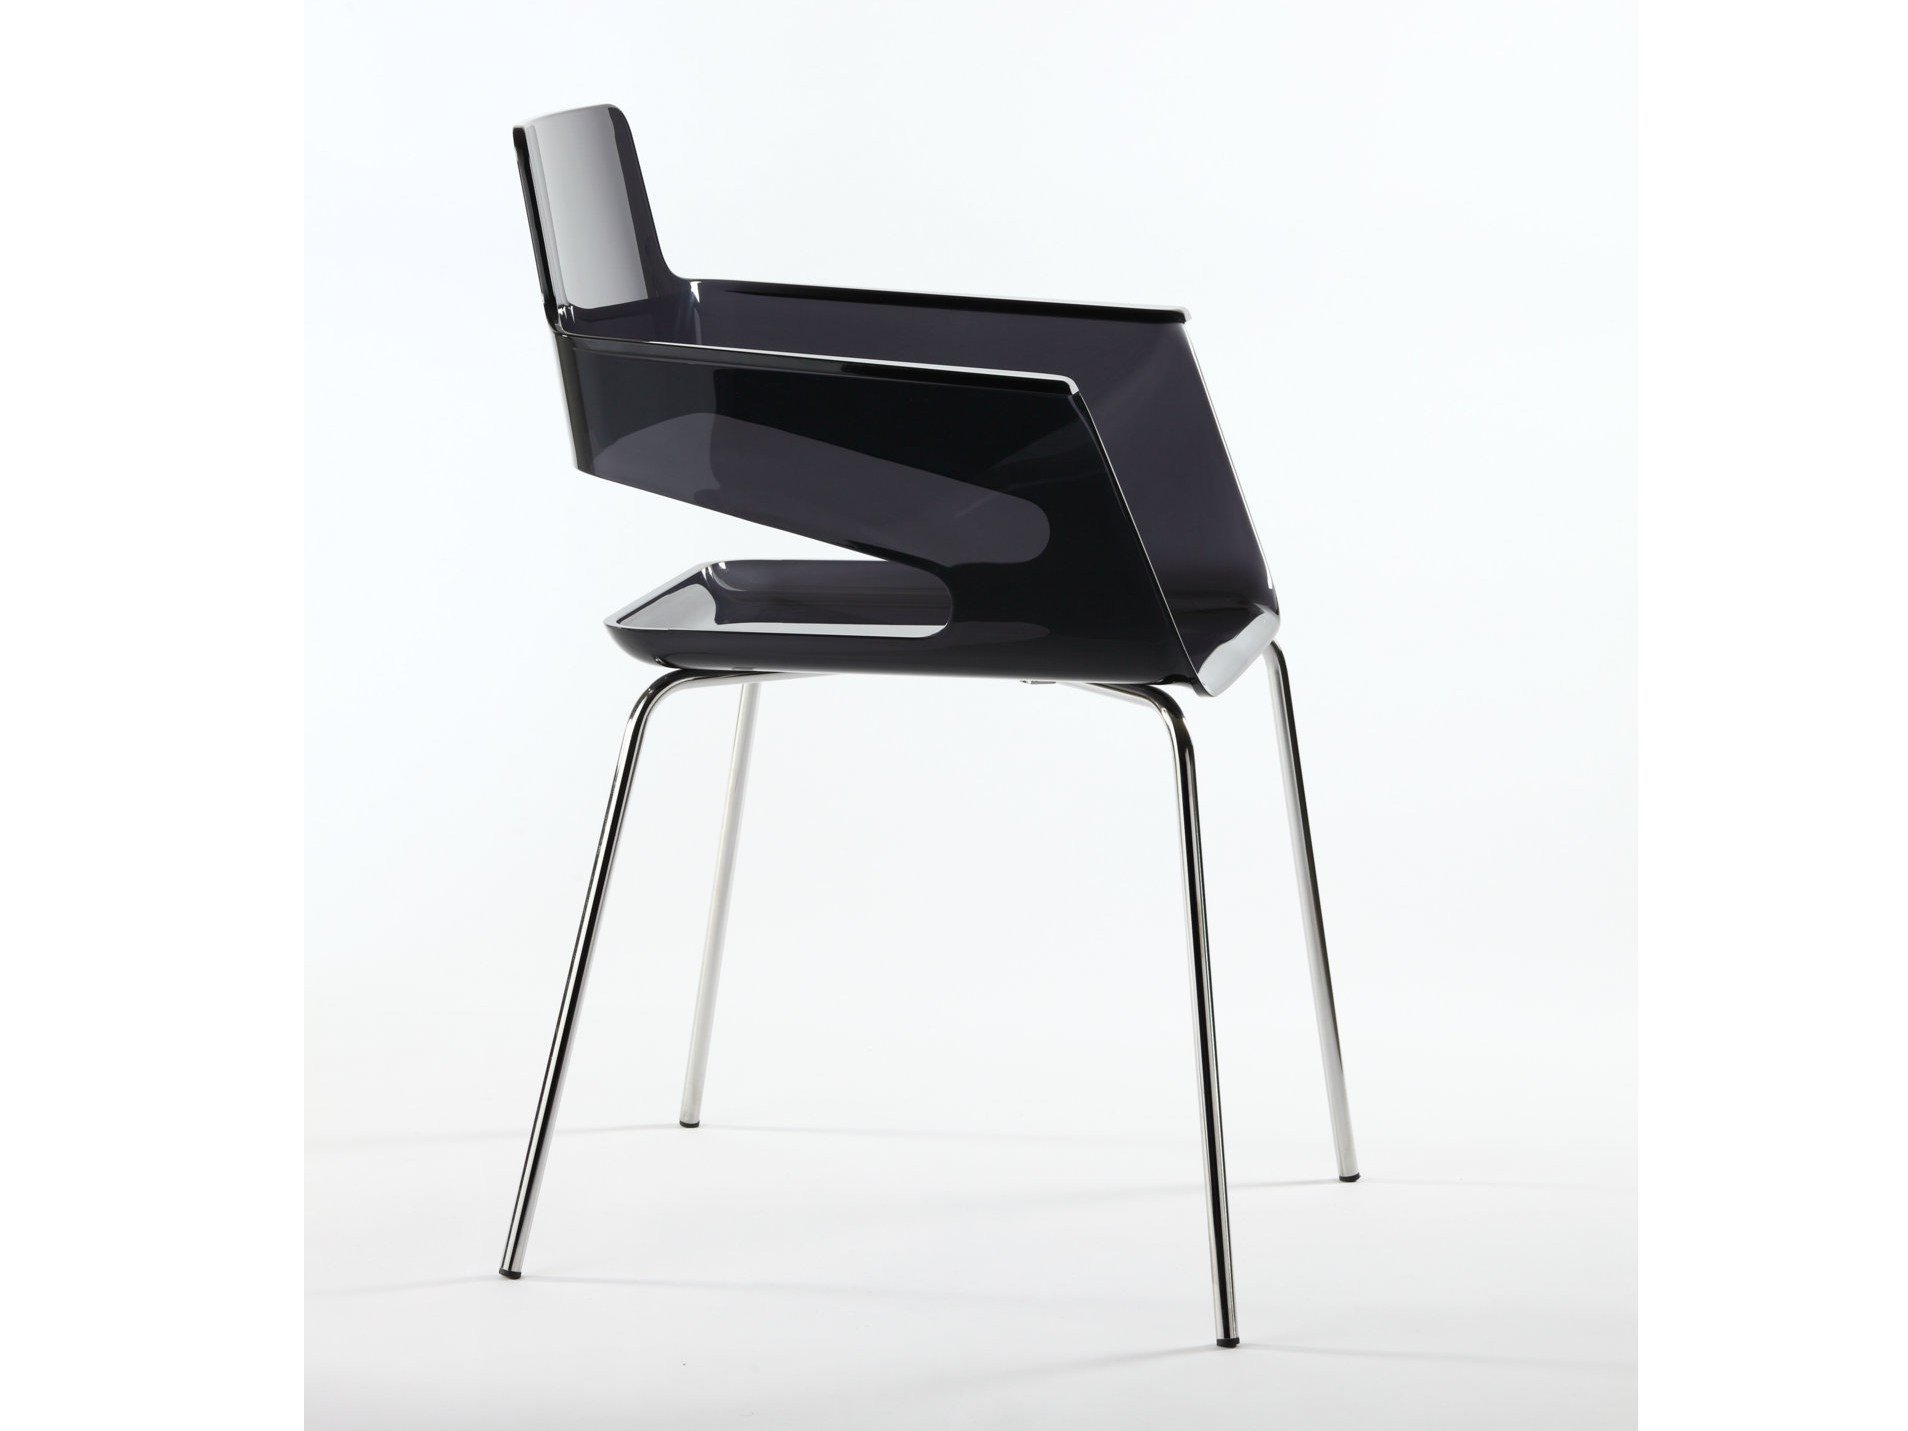 polycarbonate furniture. b32 4l polycarbonate chair by arrmet design robby u0026 francesca cantarutti furniture a